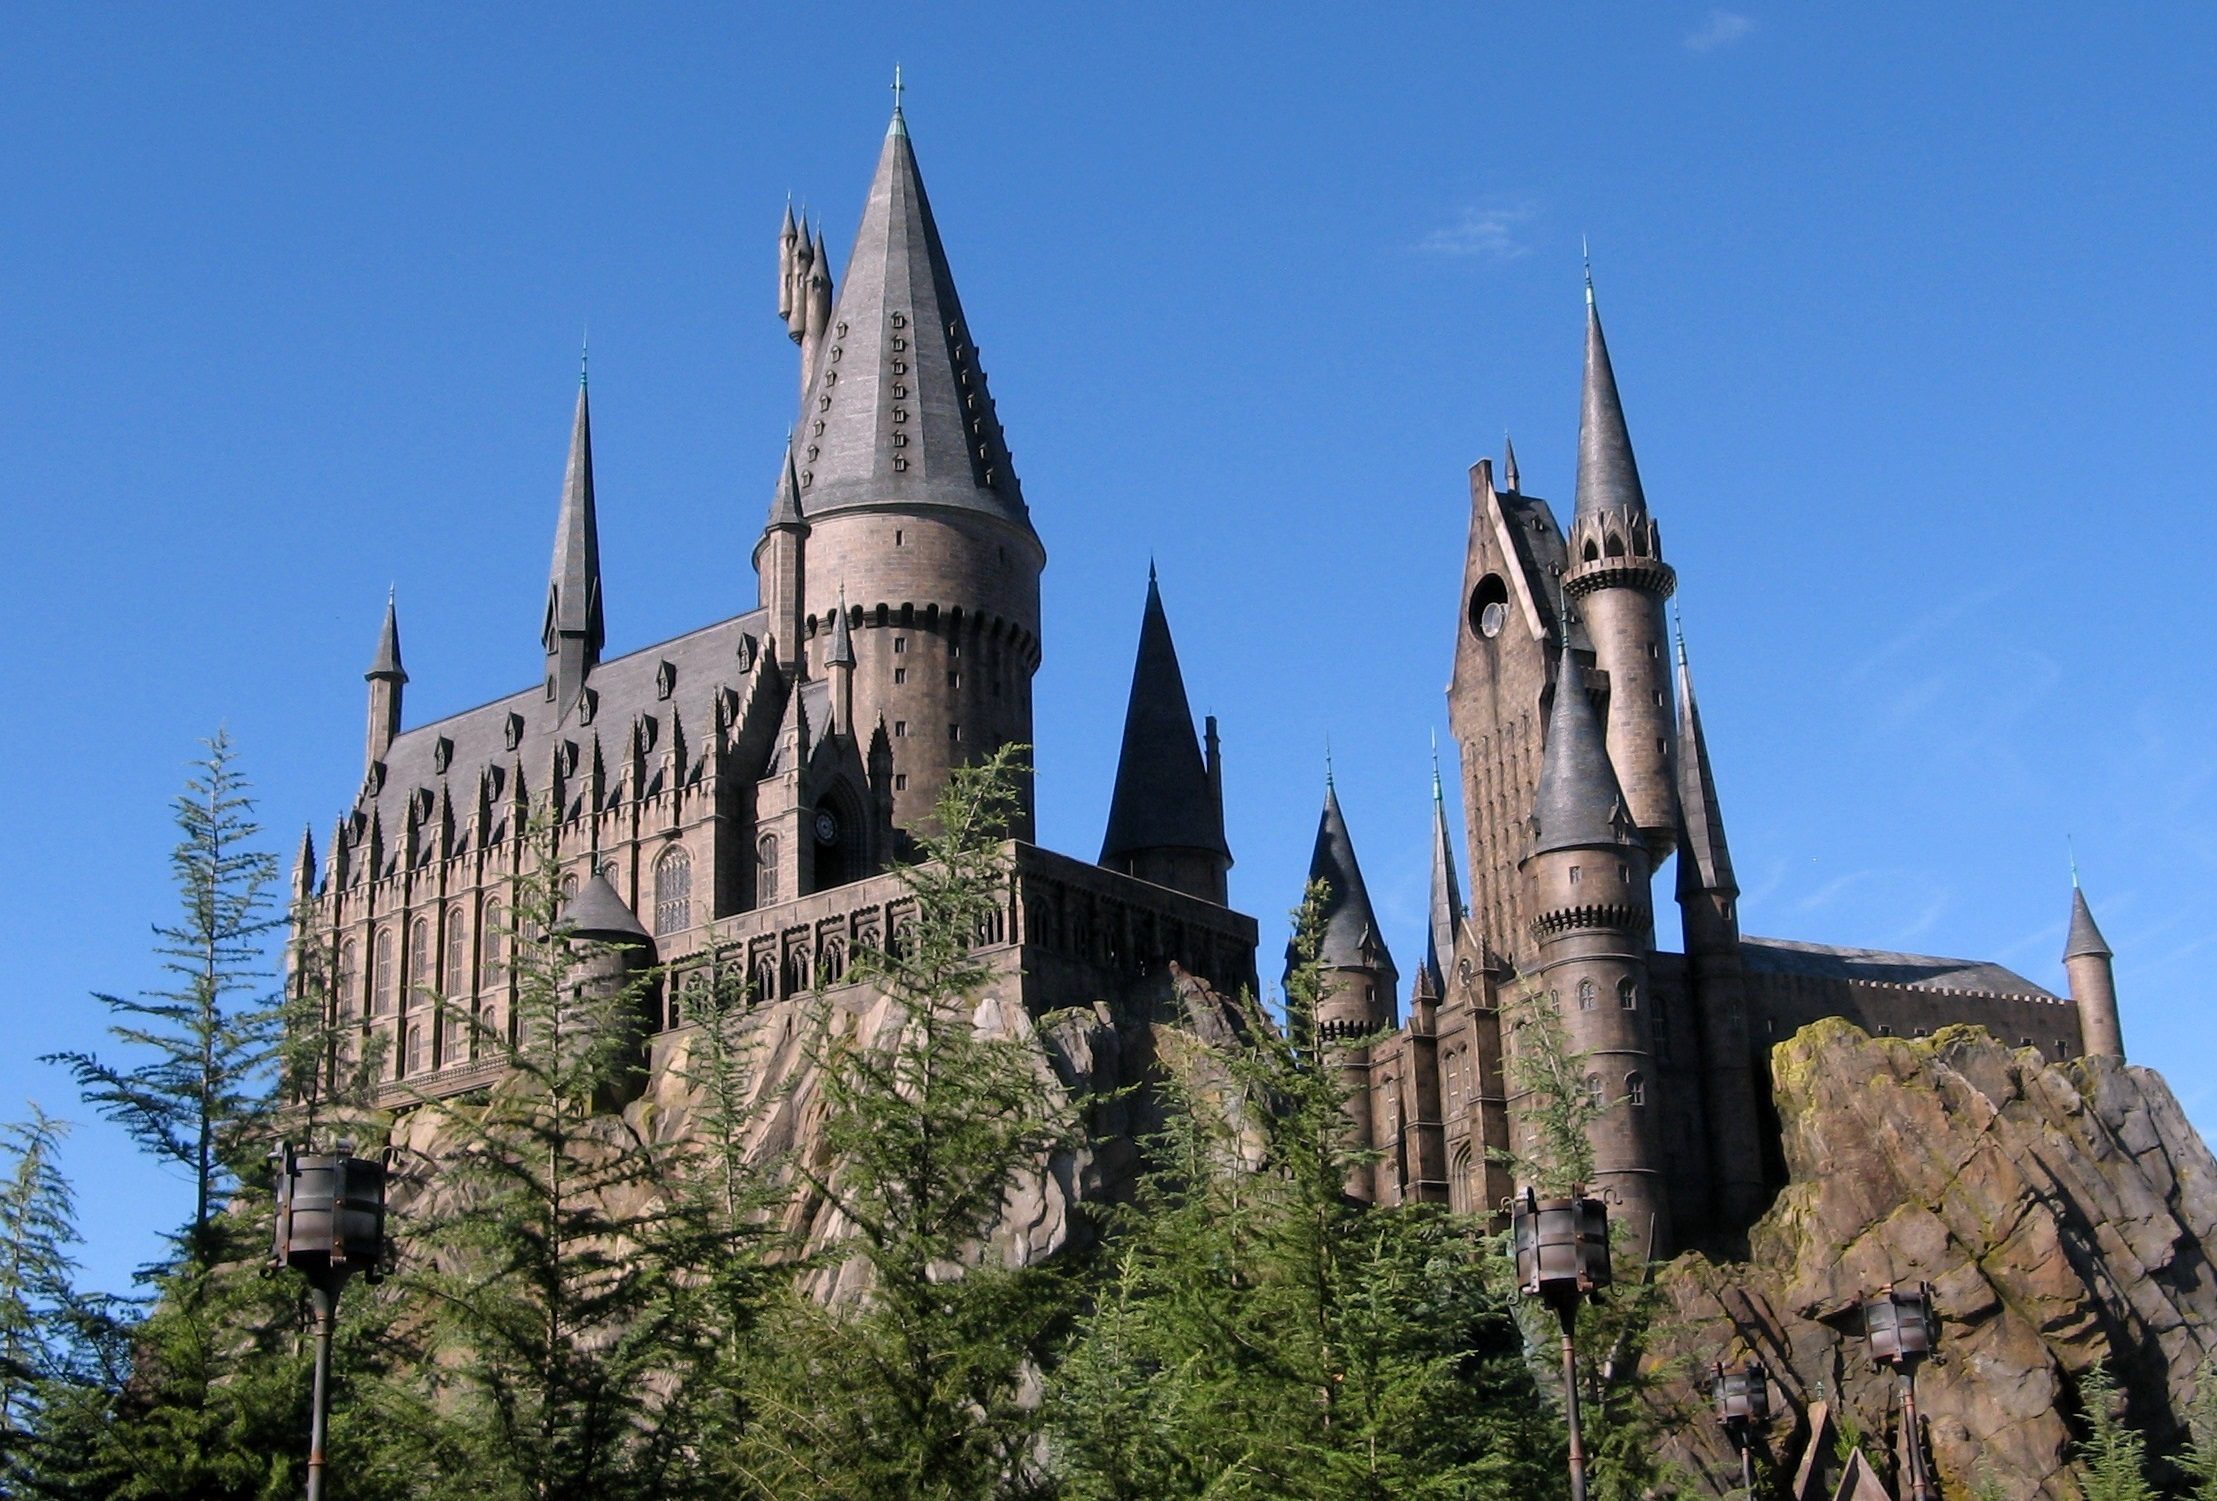 Hogwarts Castle in the Wizarding World of Harry Potter, an island of Island's Of Adventure in the Universal Orlando Resort. Photo by Carlos Cruz / Wikimedia Commons.